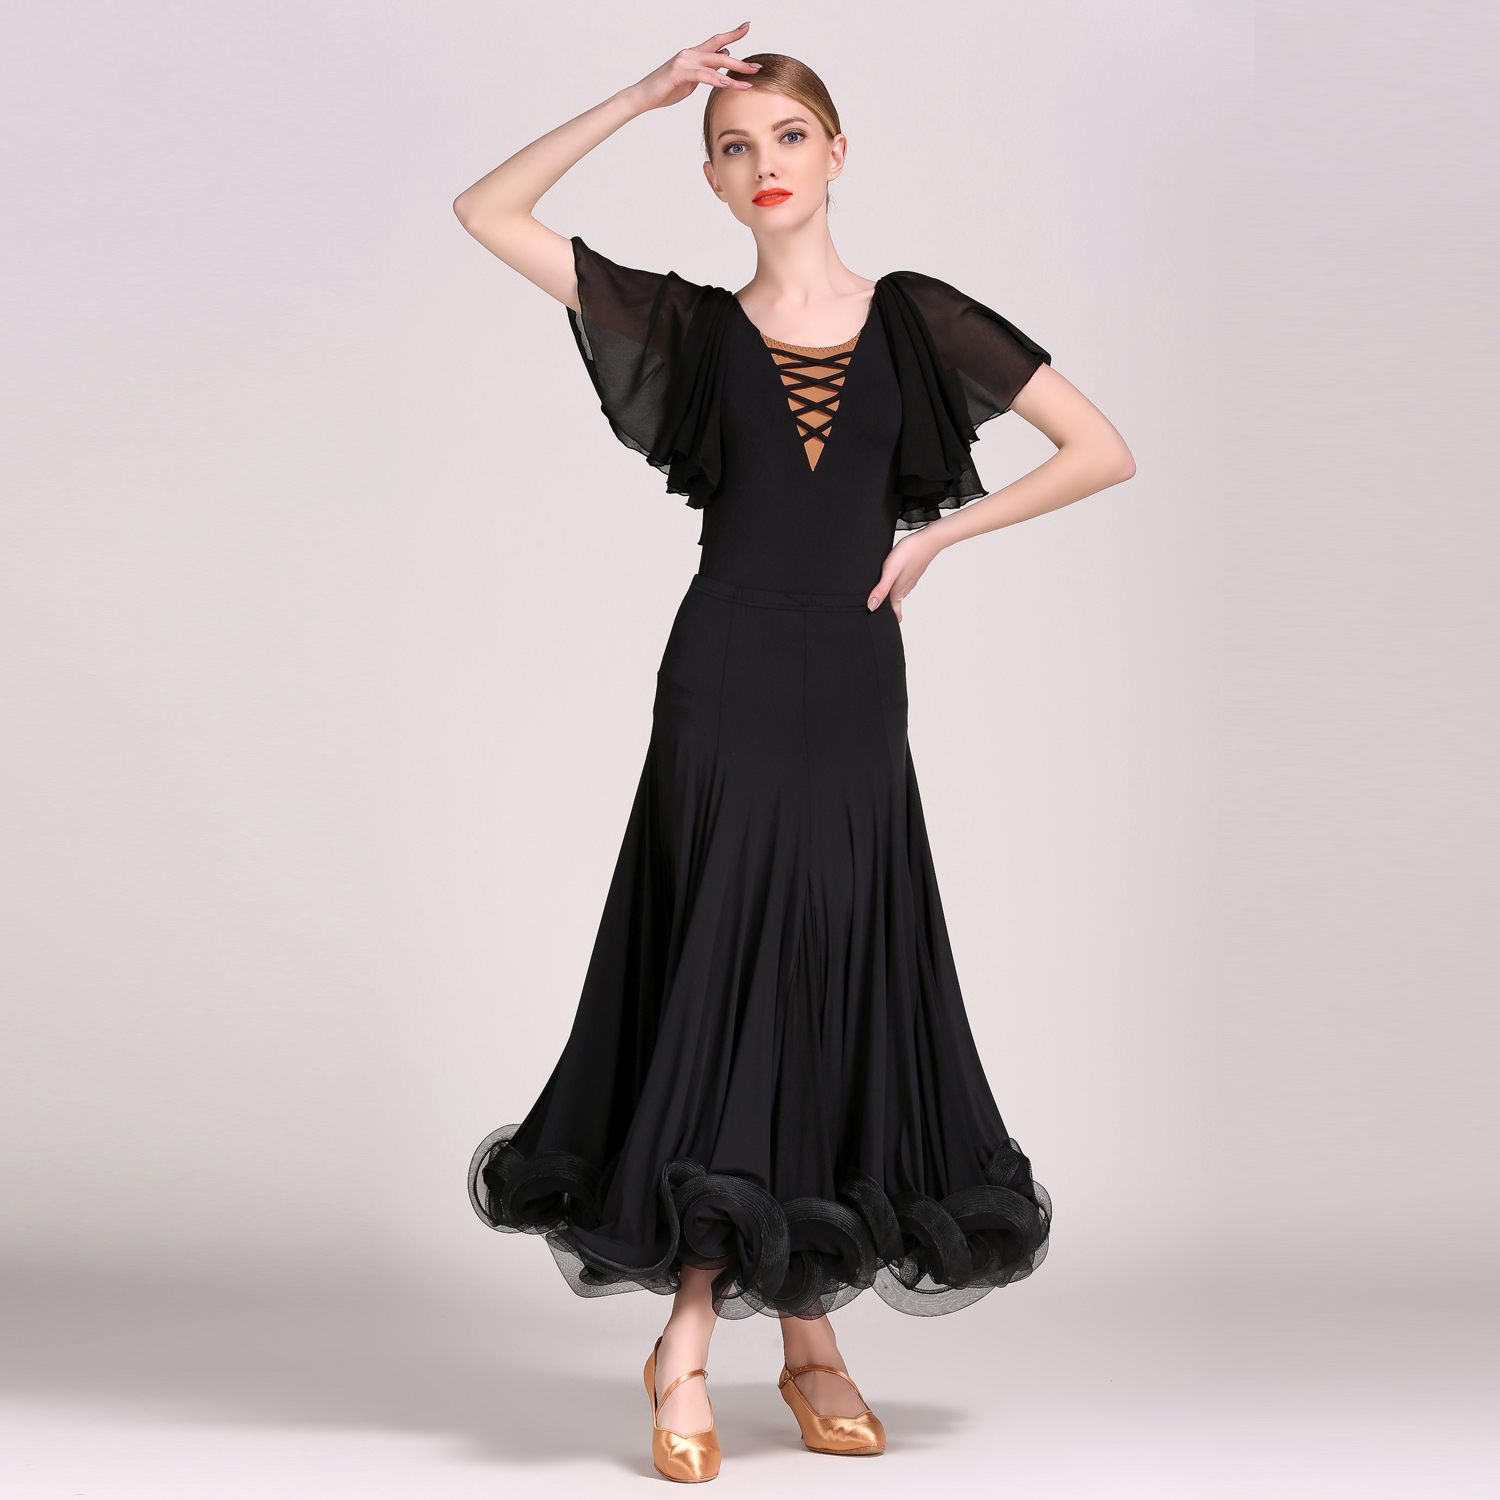 GB032 and S8025 Modern Dance Costume Top and Skirt Suits Dance Dress Ballroom Costume Women Lady Adult Evening Party Dress 1846 and 1847 latin dance top and skirt suits dance dress ballroom costume leotard women lady adult evening party dress